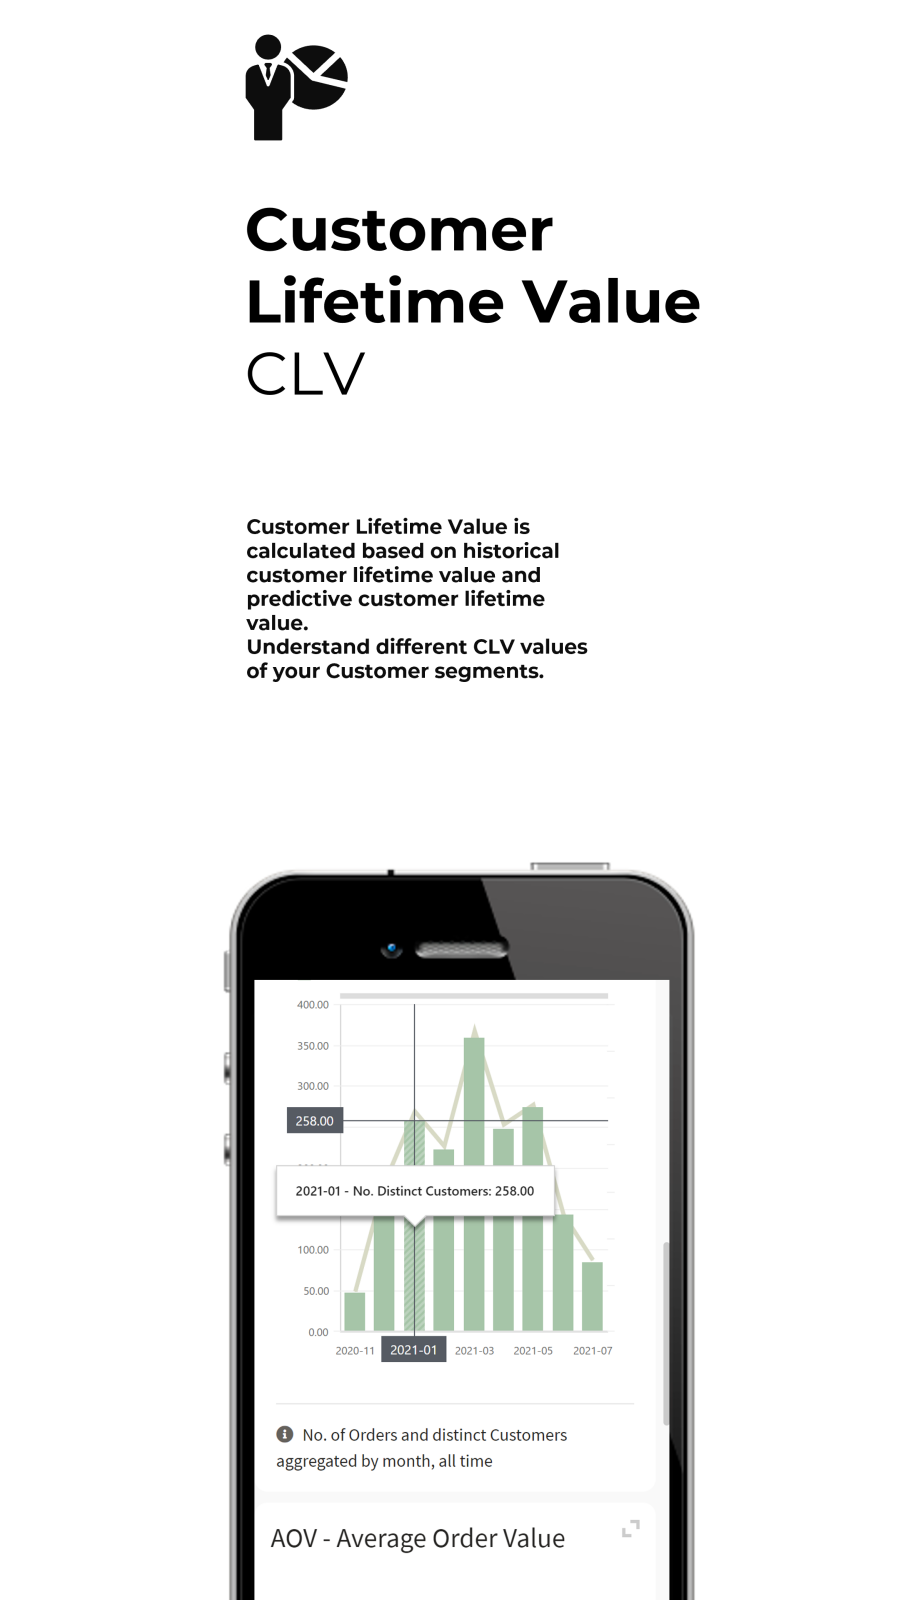 Seery: Customer Lifetime Value at a glance